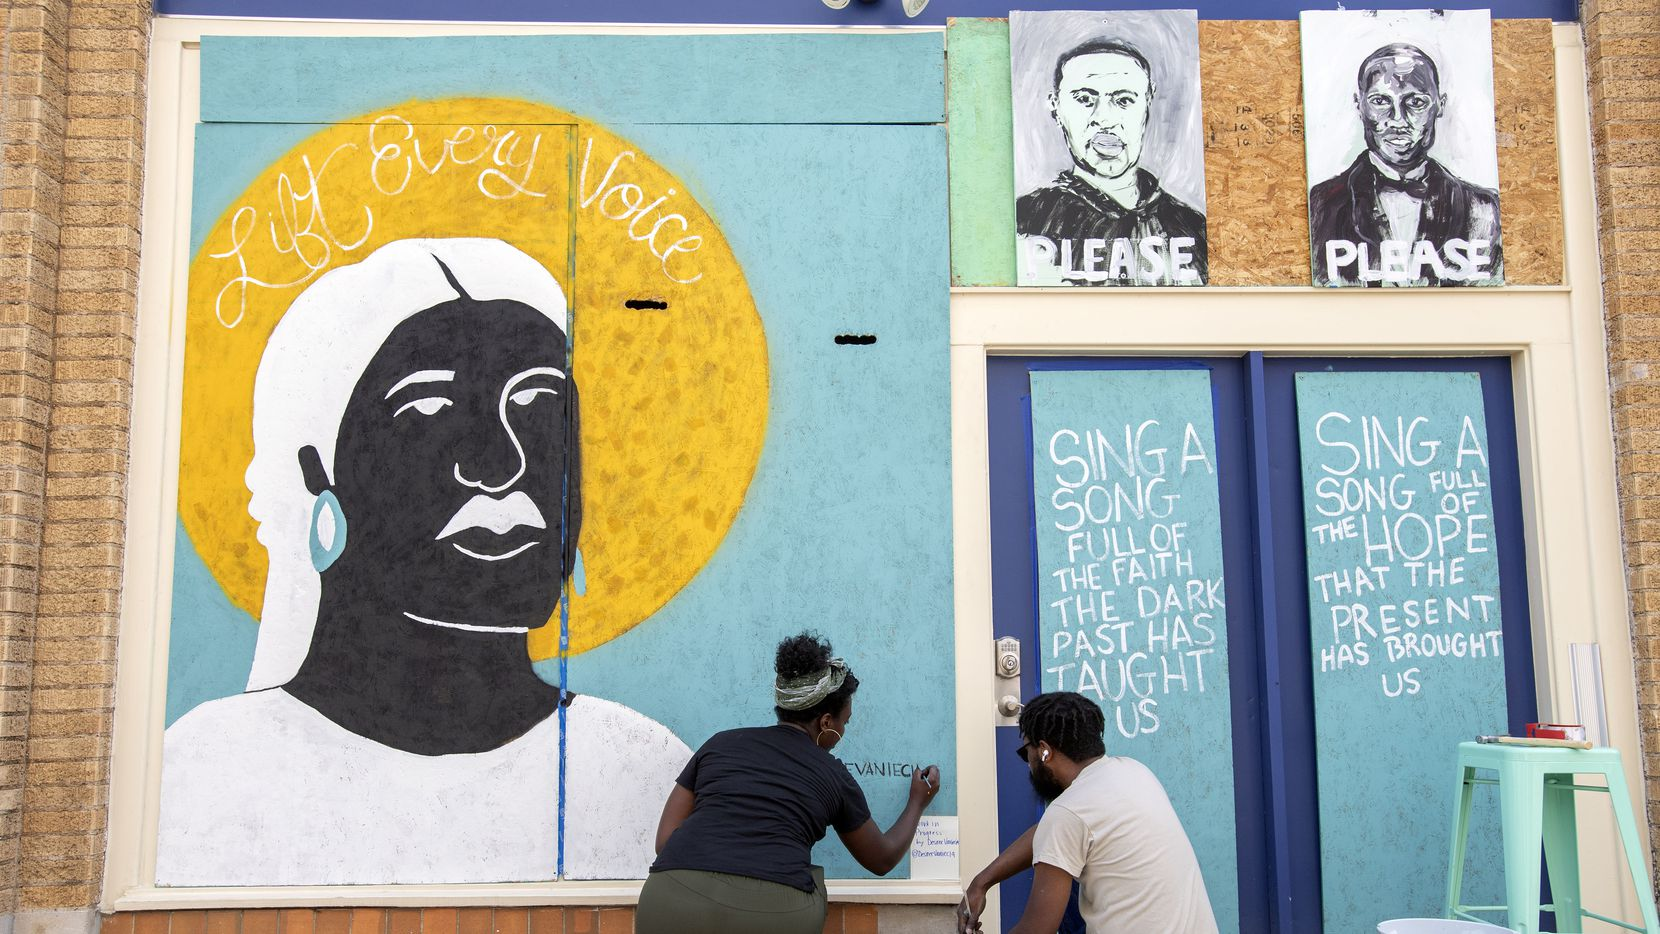 Desiree Vaniecia and Joeneal Berry sign their names on a mural they painted on plywood on Monday, June 1, 2020 in Deep Ellum in Dallas. Two other artworks, by Dallas artist Joel Murray, are also displayed above the doorway.